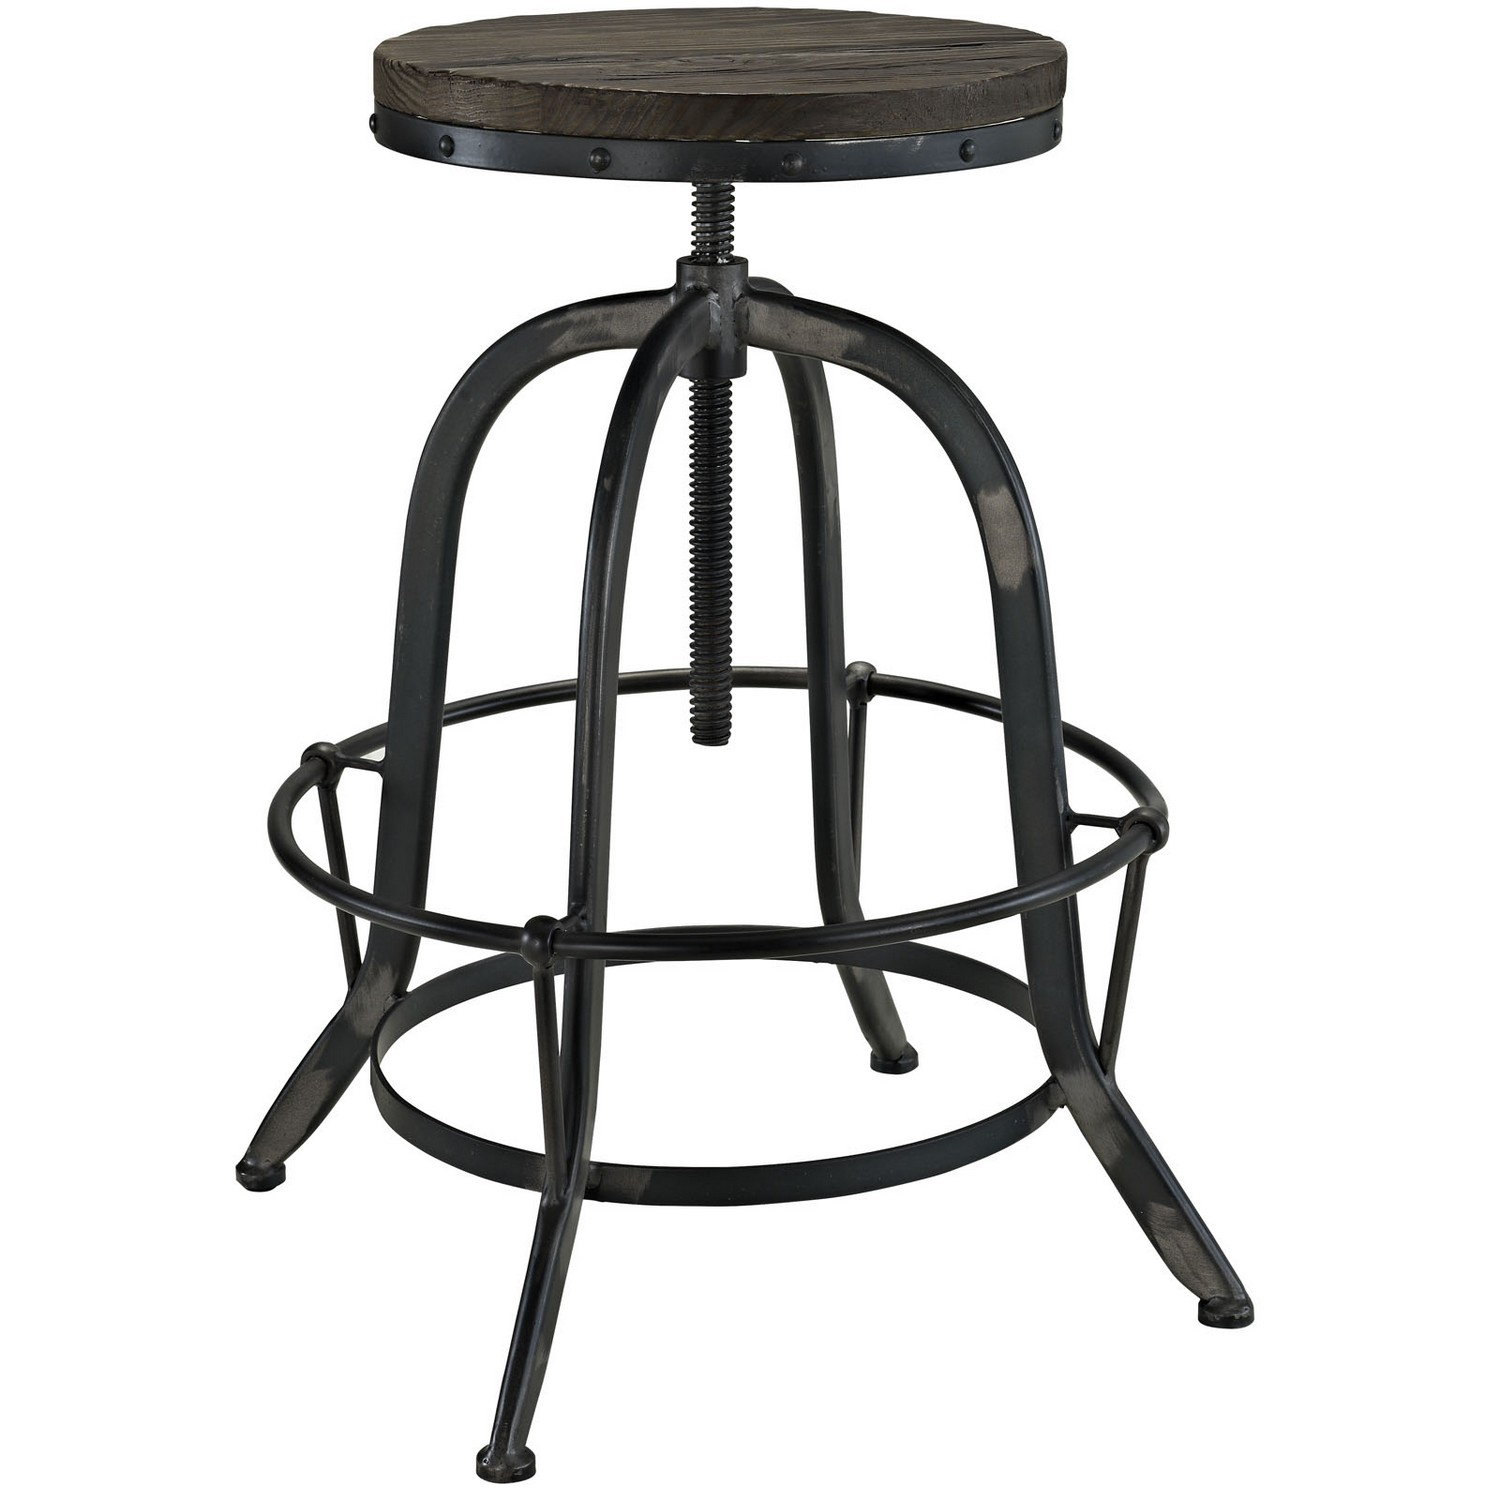 Modway Sylvan 3 Piece Pub Set - Black